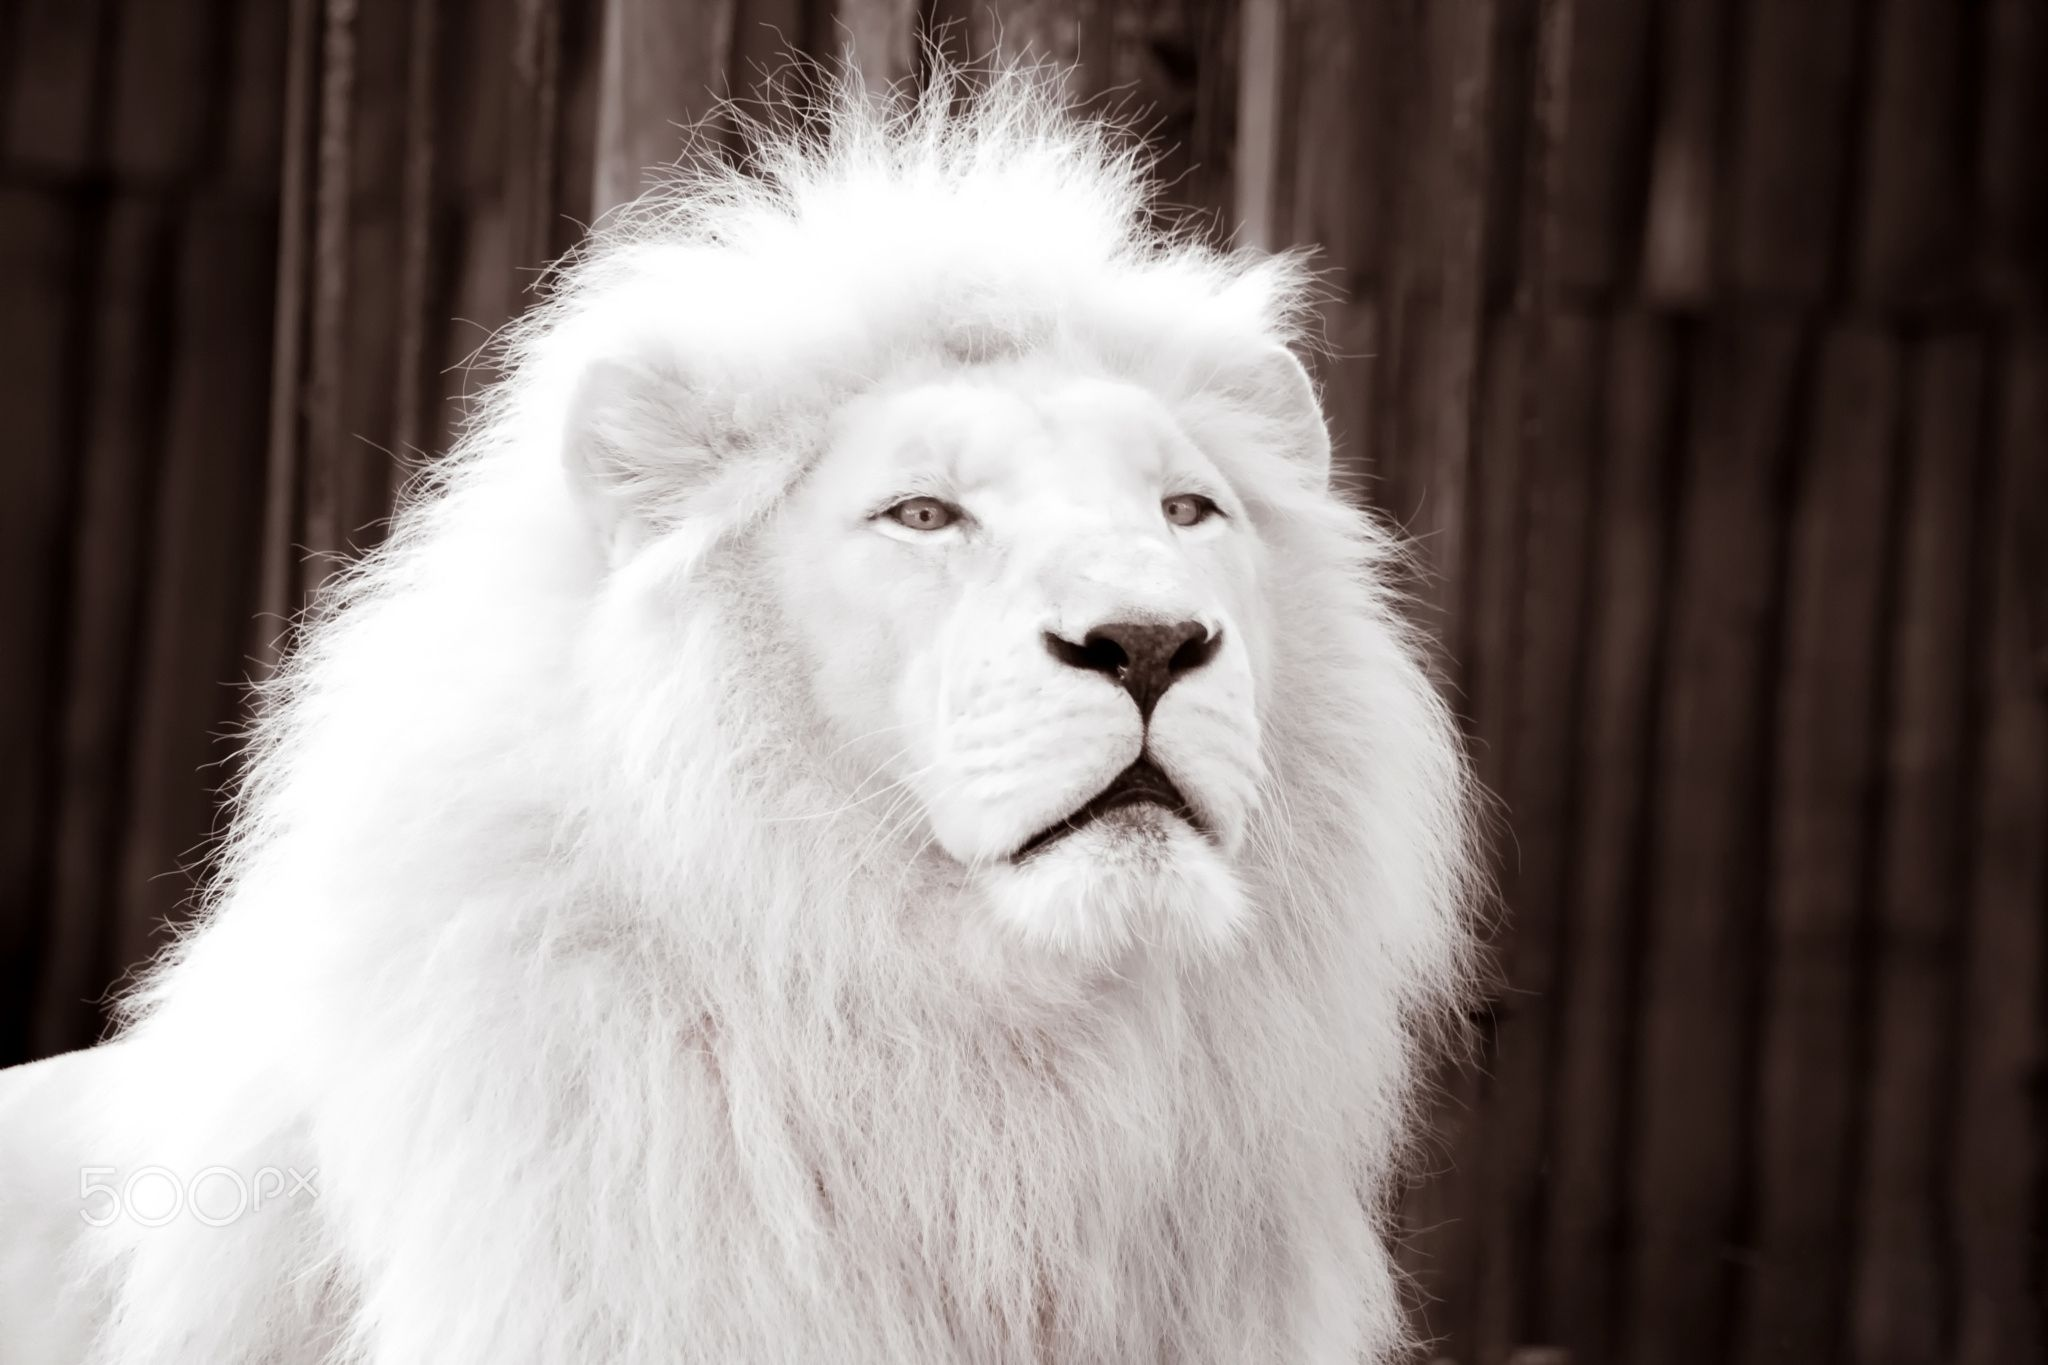 albino lion albino lion bratislava slovakia per aspera ad astra pinterest. Black Bedroom Furniture Sets. Home Design Ideas